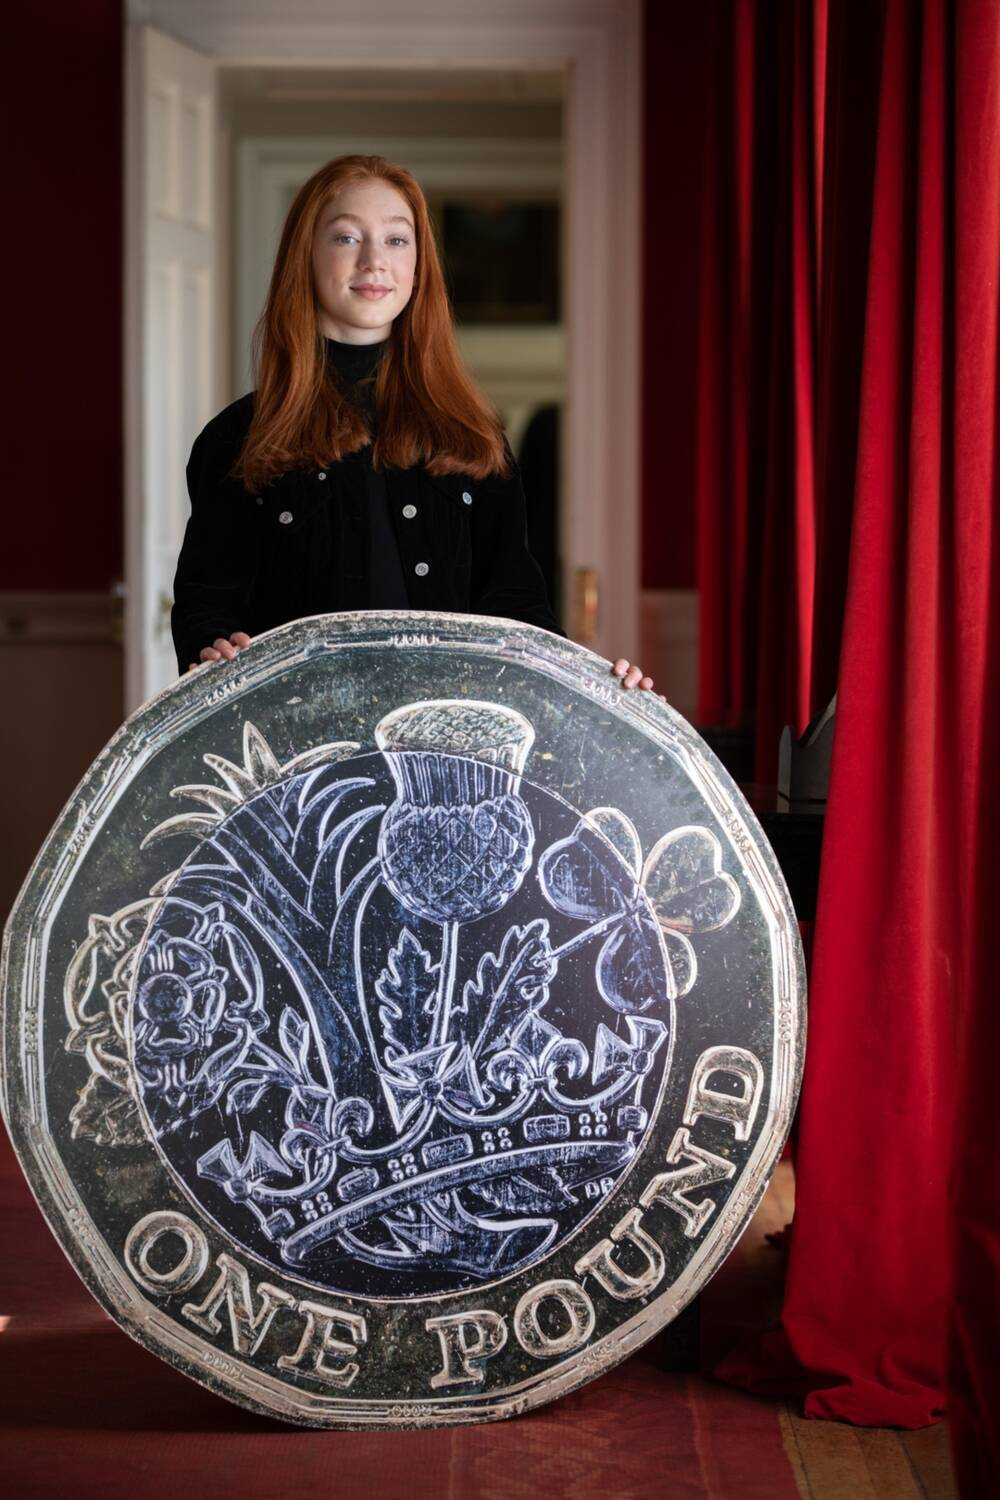 Cherry stands inside Pollok House, beside a floor-length red curtain, holding a giant pound coin.